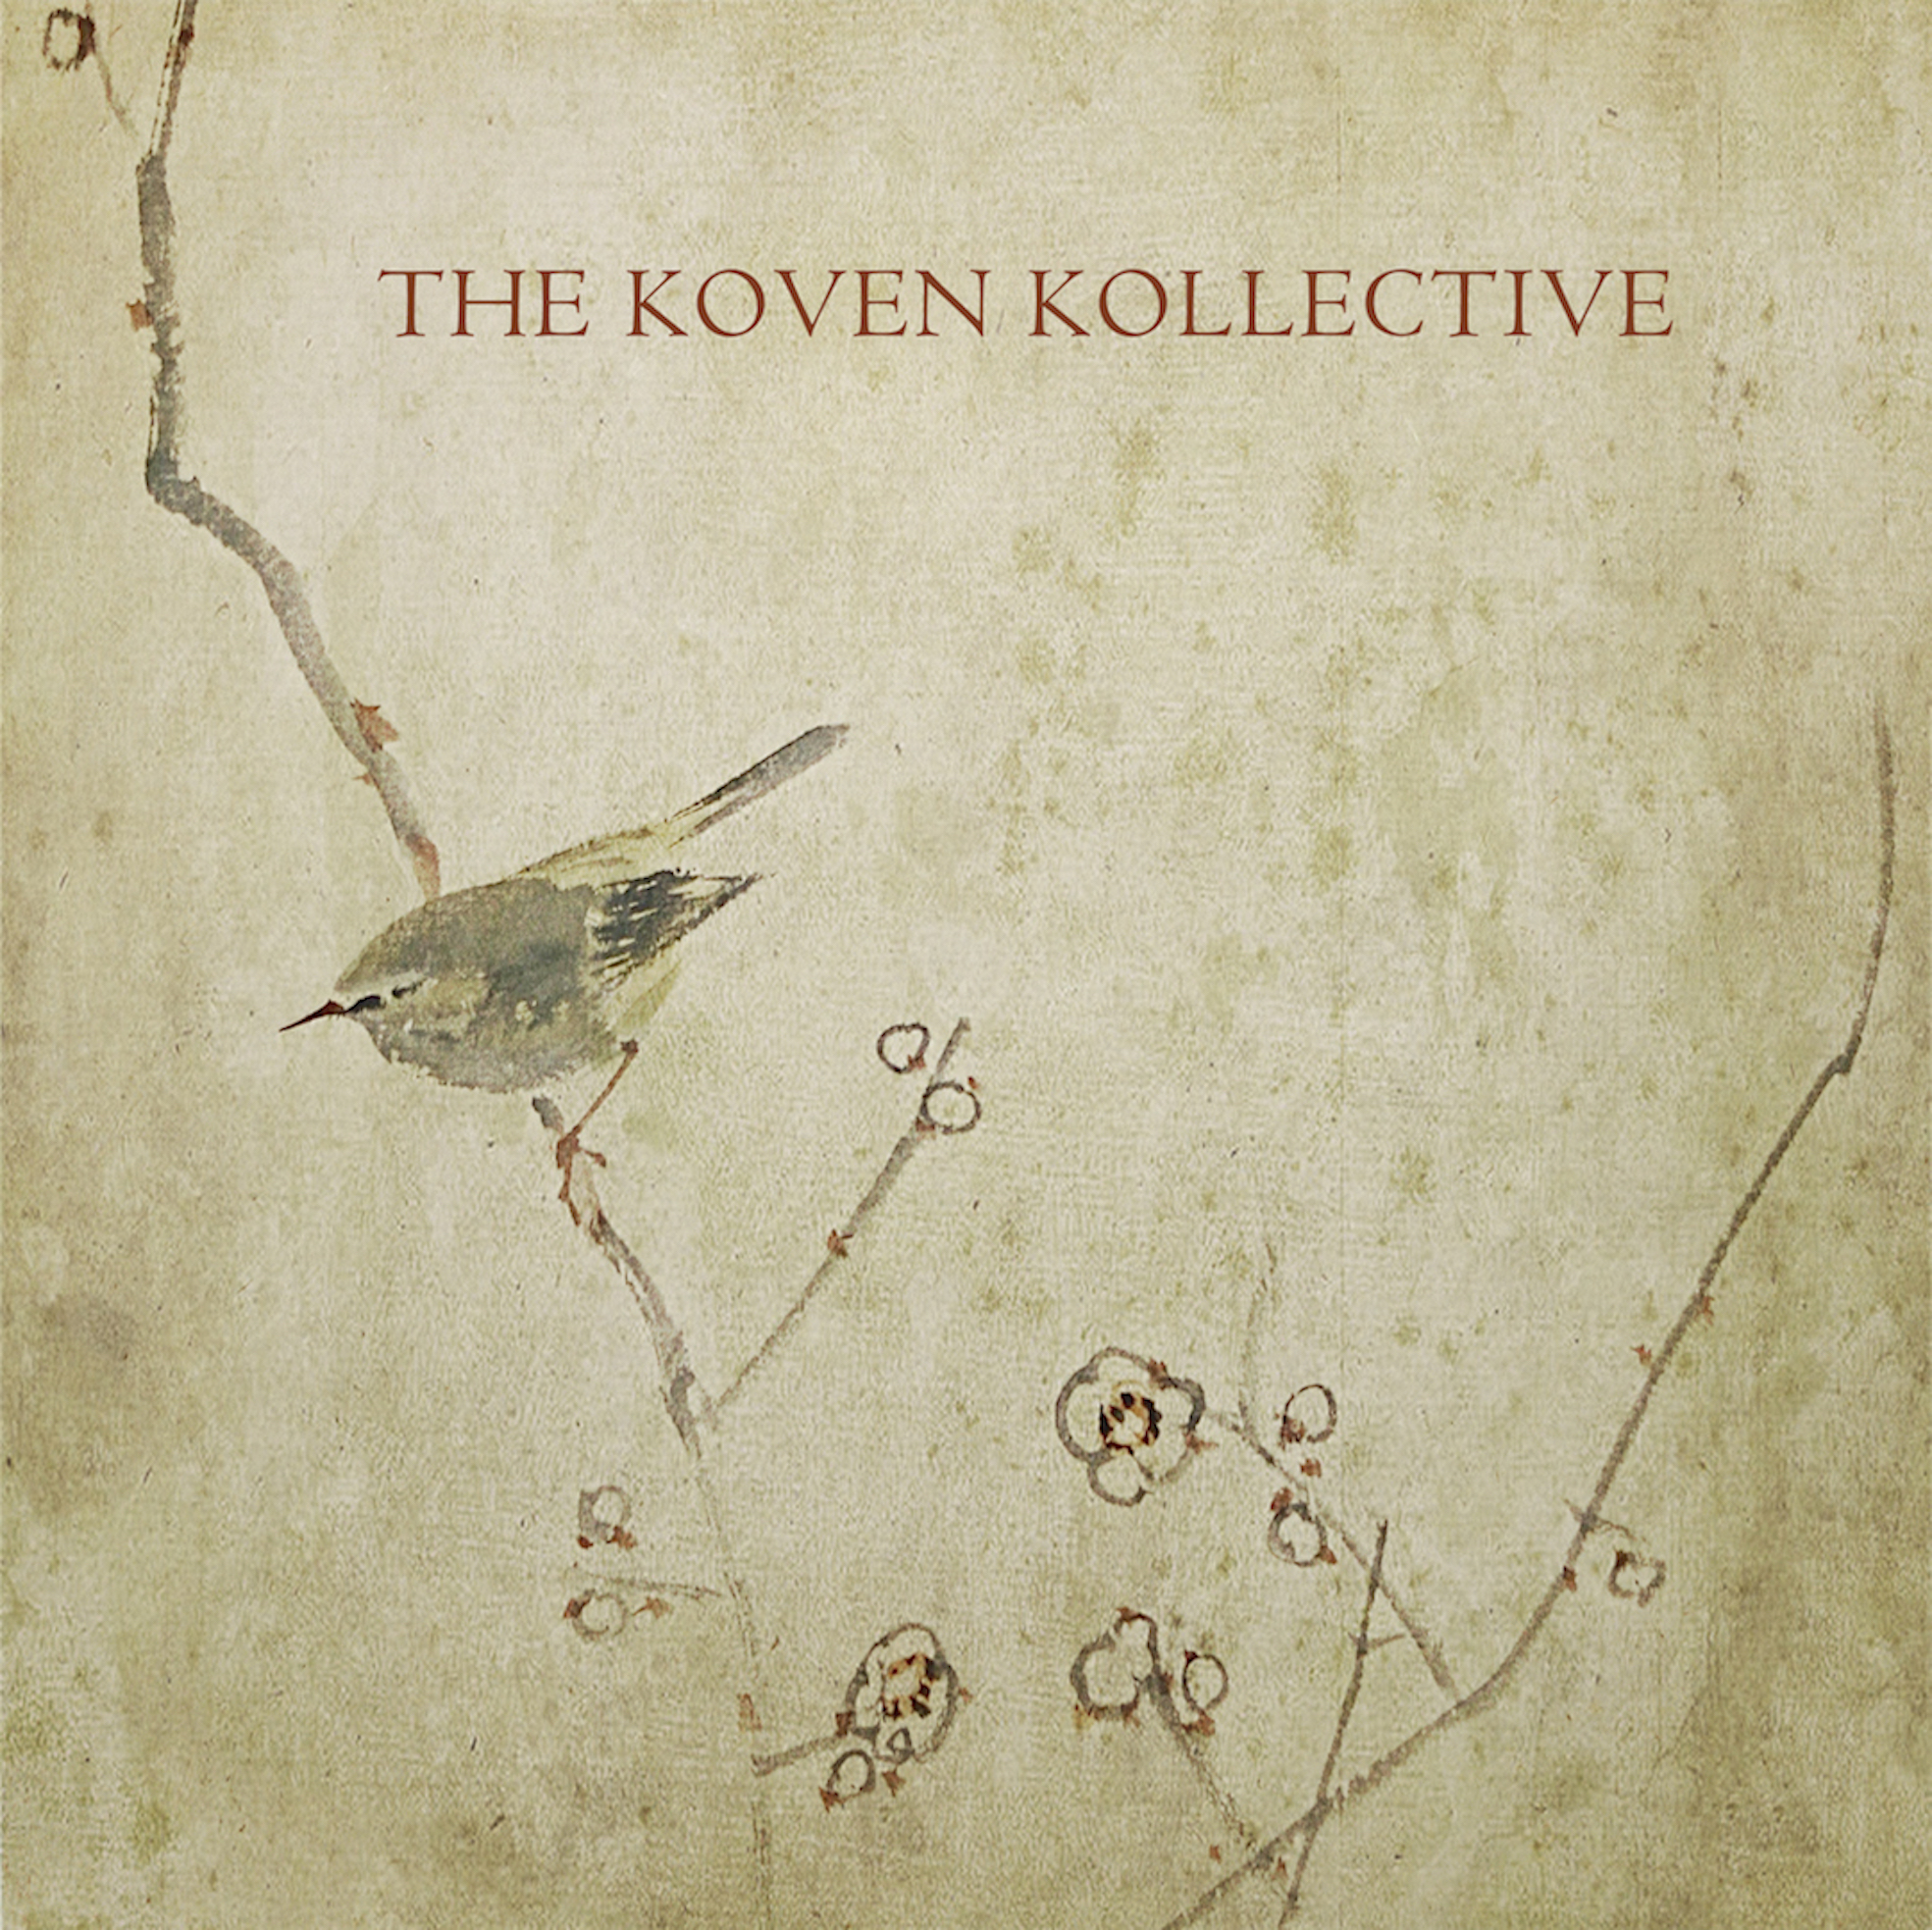 The Koven Collective Album Cover